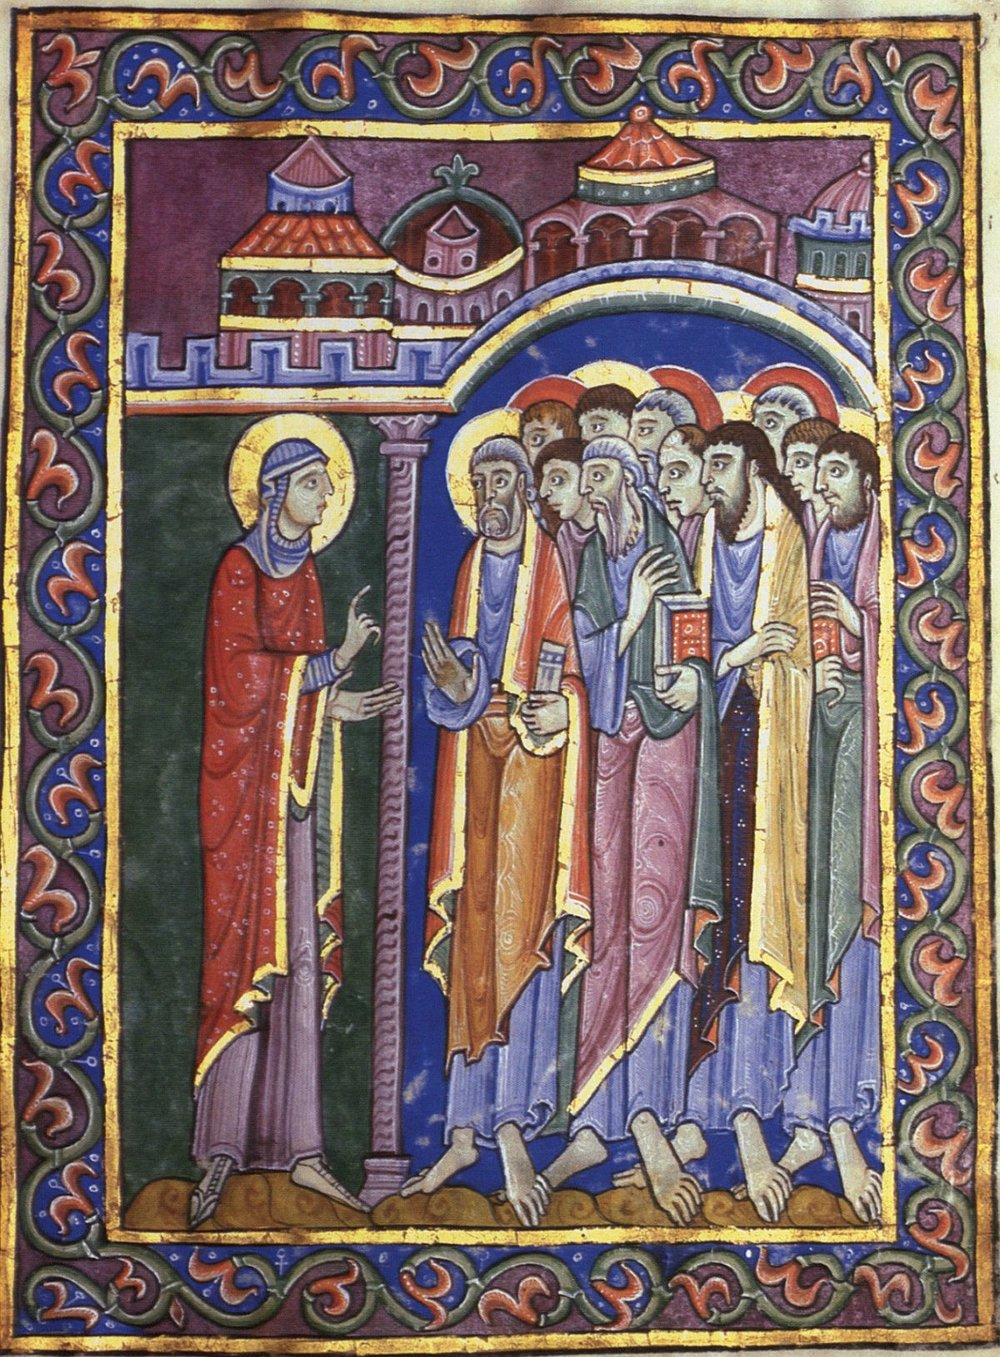 Mary Magdalen Announces the Resurrections - St. Alban's Psalter